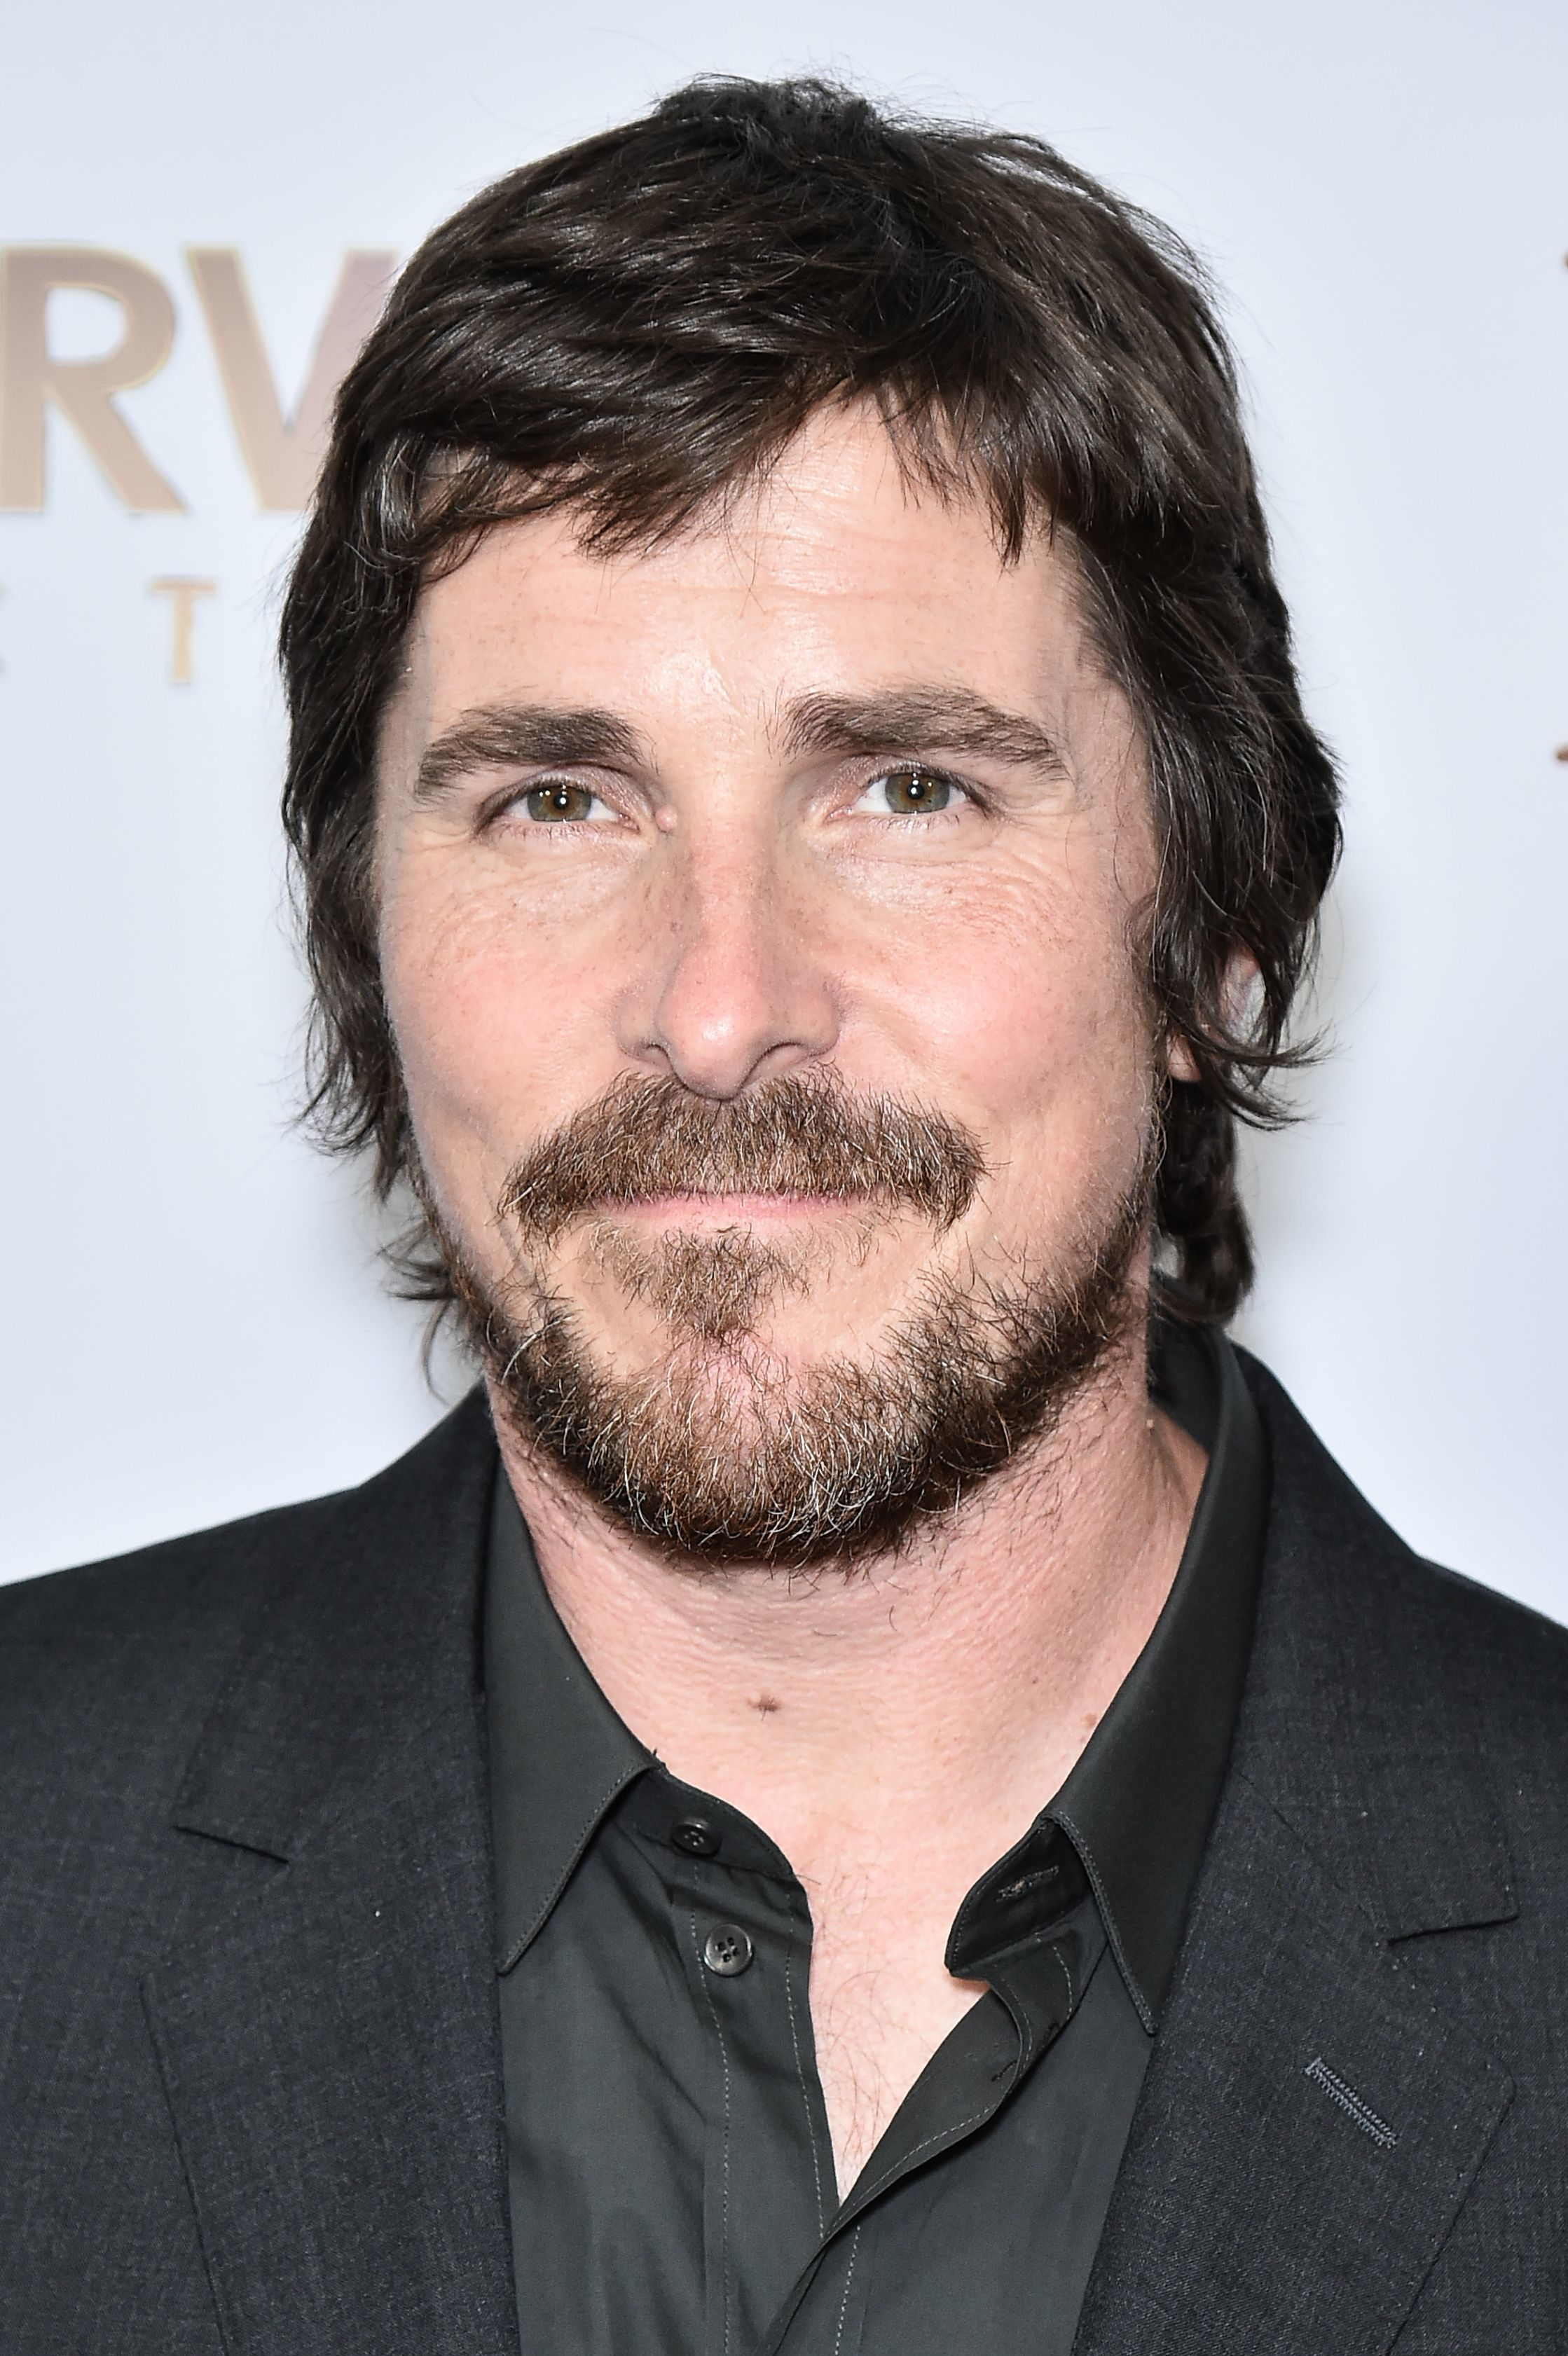 """Christian Bale attends a special screening of """"The Promise"""" in New York City on April 18, 2017."""